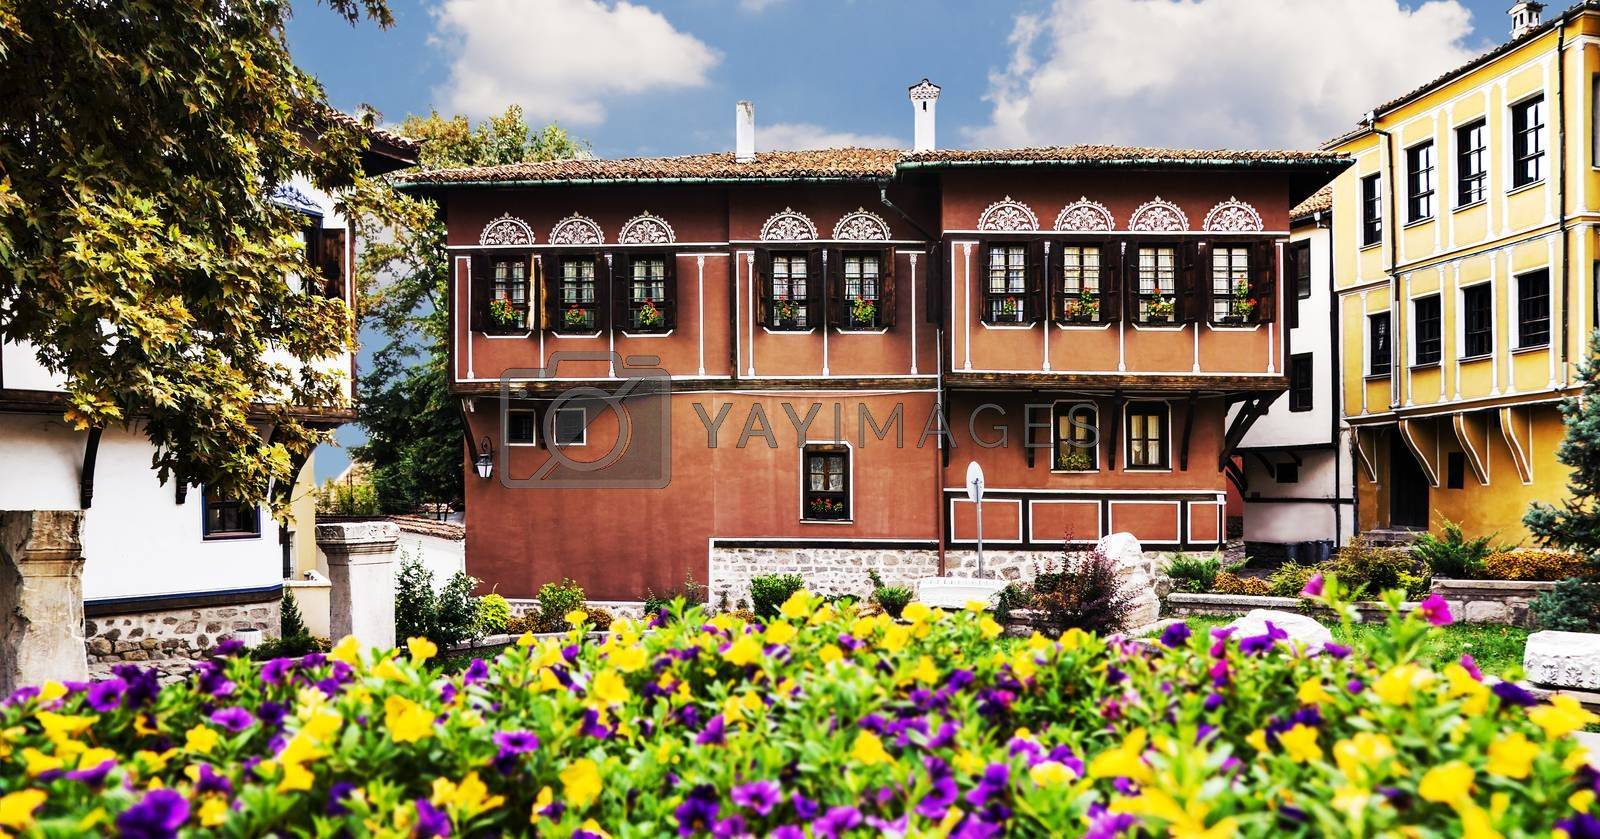 Old houses, cultural heritage in old town Plovdiv, Bulgaria with blooming flowers in foreground.